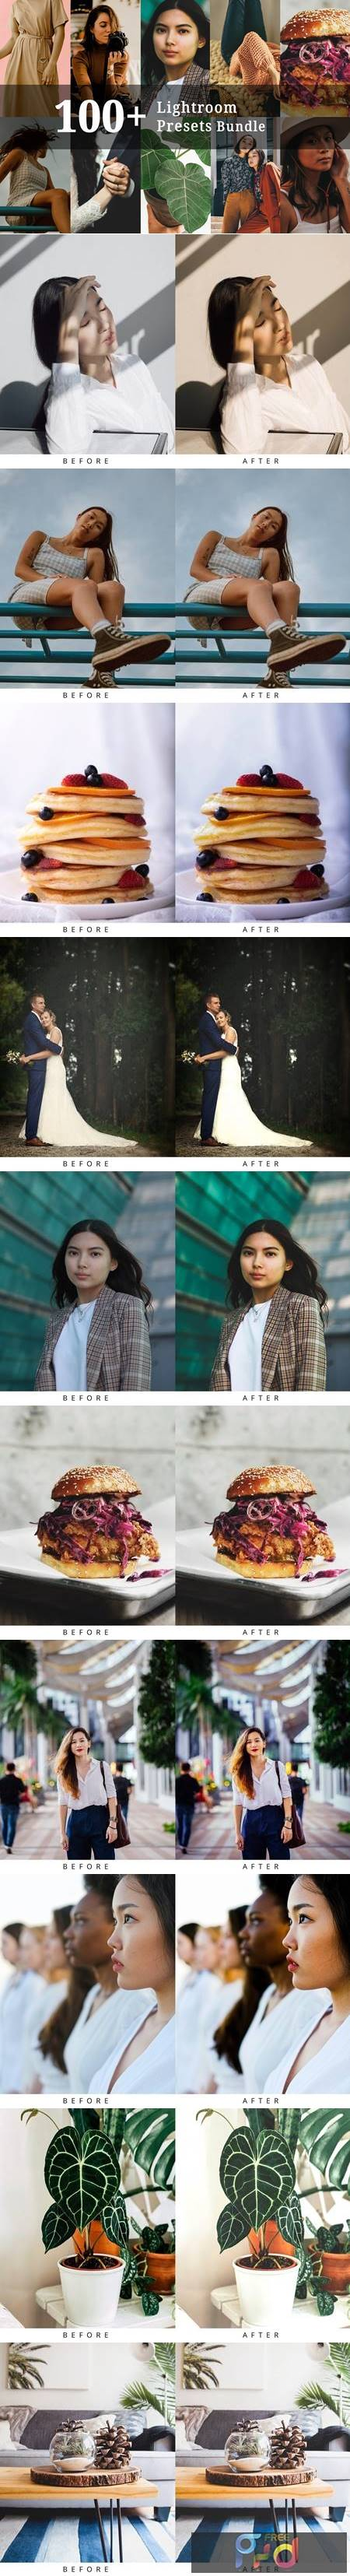 100+ Lightroom Presets Bundle 5363531 1